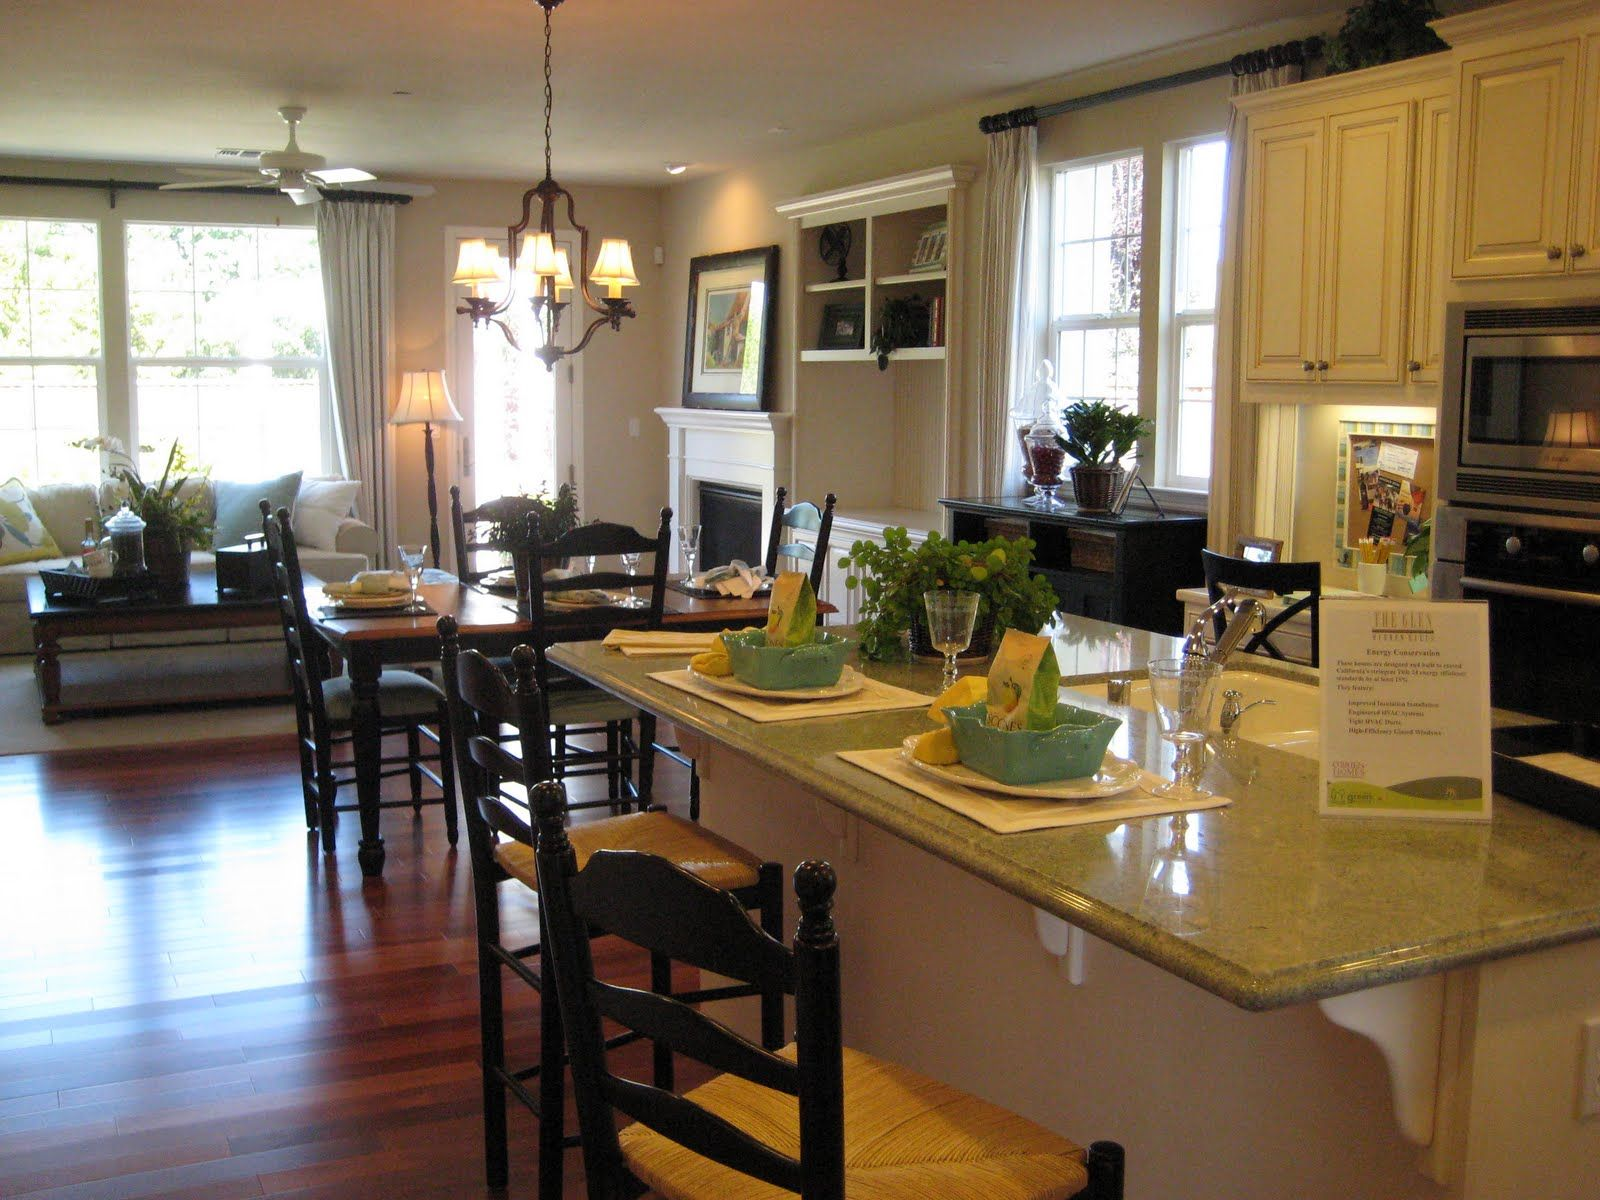 Kitchen decor ideas decoration picture model homes decorated home decorating design on also best beautiful modular images clayton remodeling rh pinterest